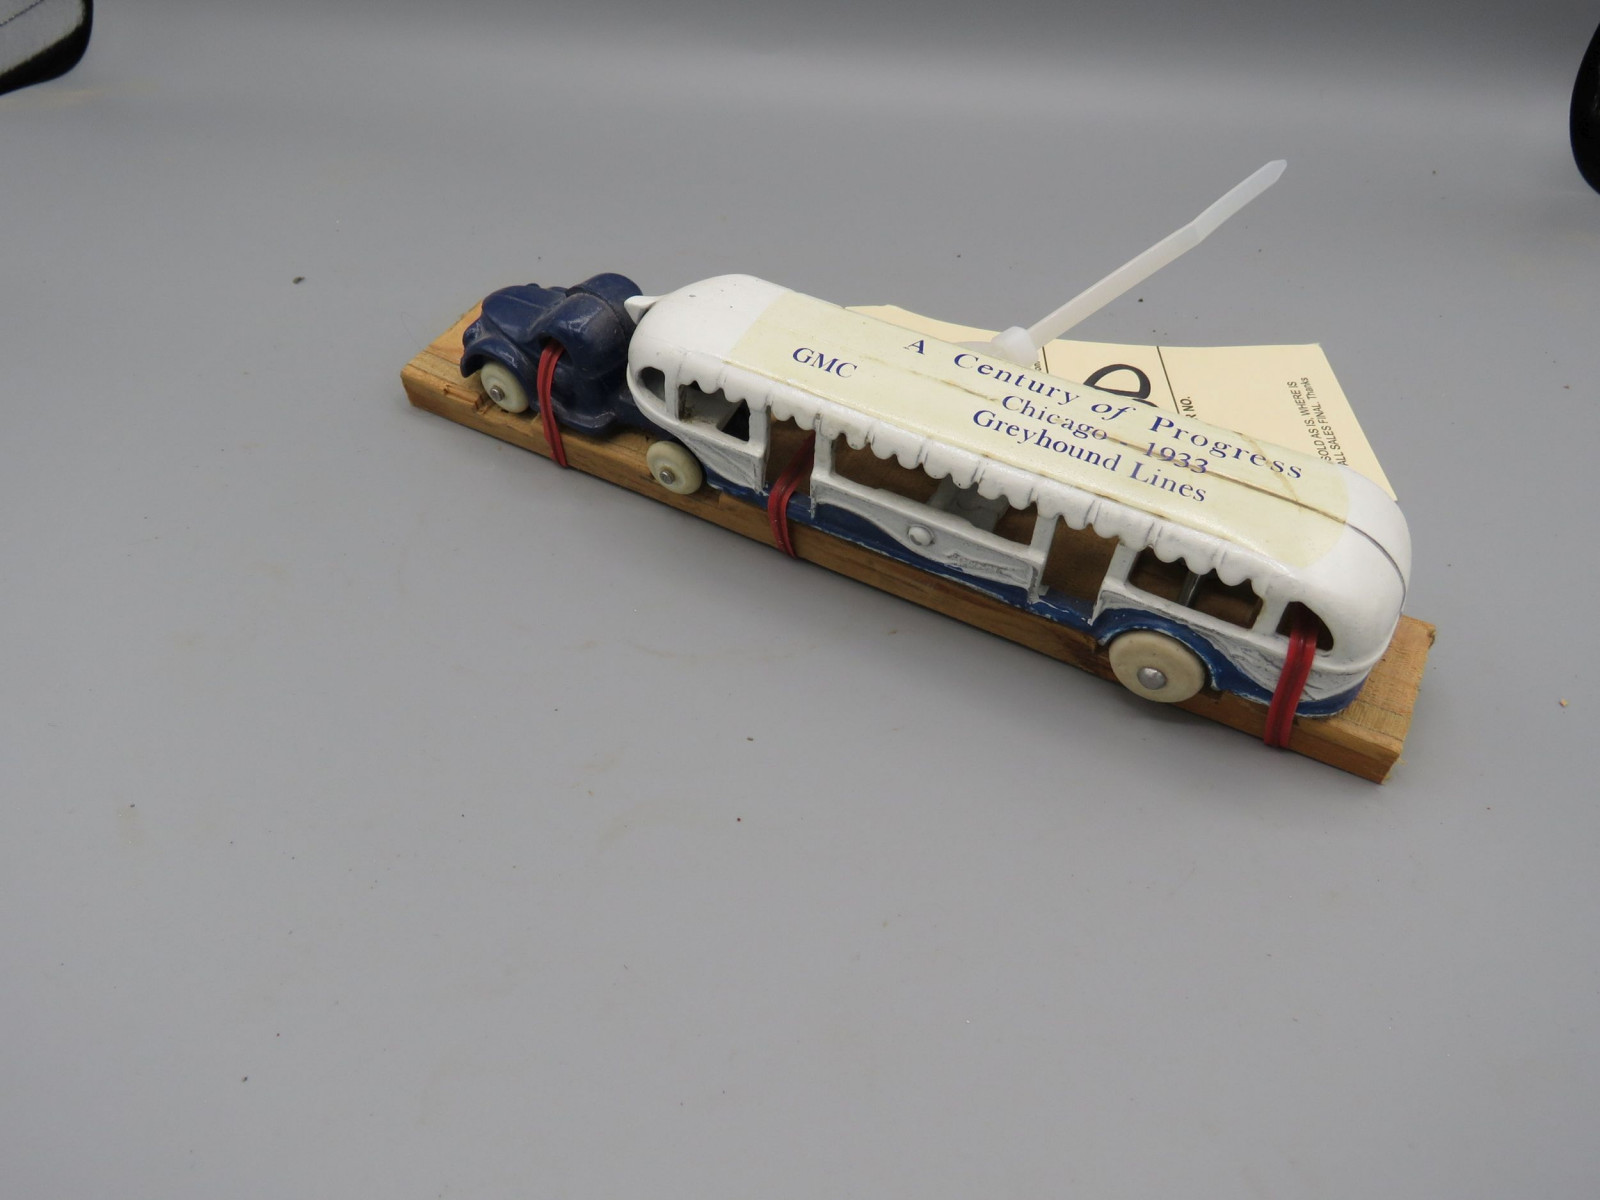 Arcade Cast Iron 1933 Chicago Worlds Fair Greyhound Touring Bus - Image 2